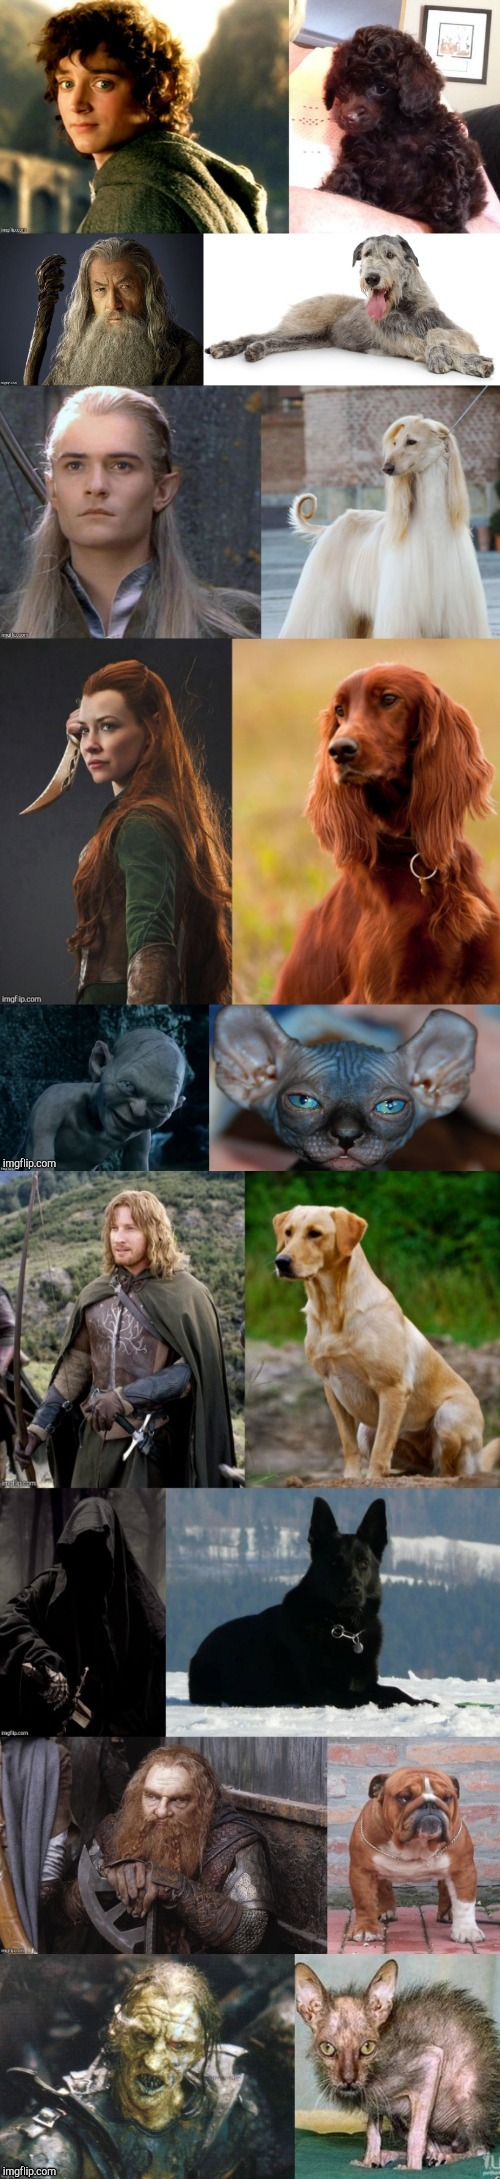 Lord of the Pets | image tagged in lord of the rings,the hobbit,dogs,doppelgnger,pets,funny | made w/ Imgflip meme maker